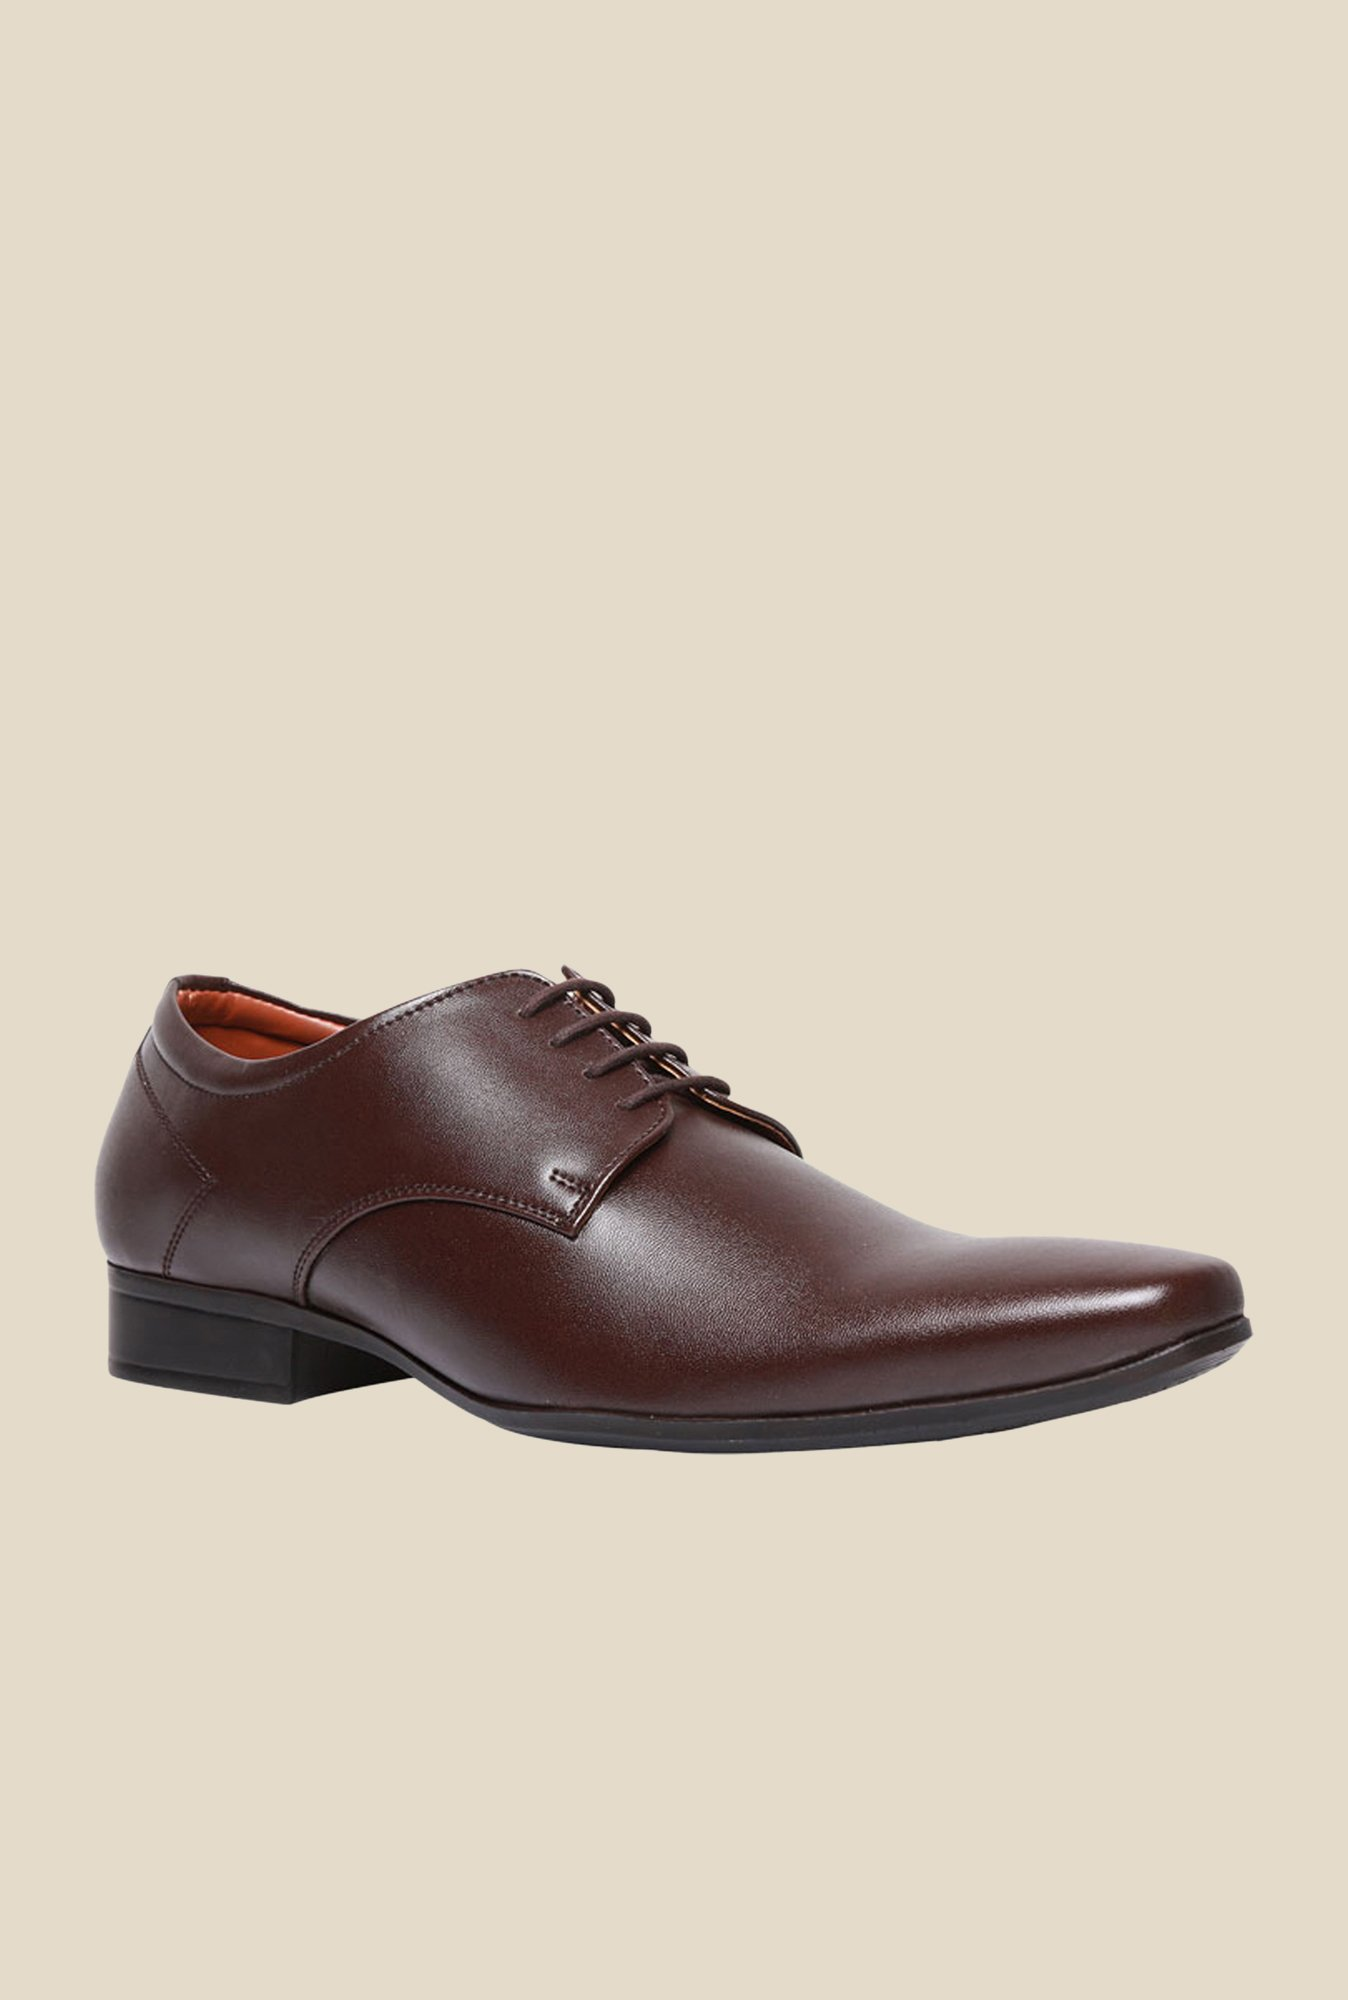 Bata Pine Brown Derby Shoes